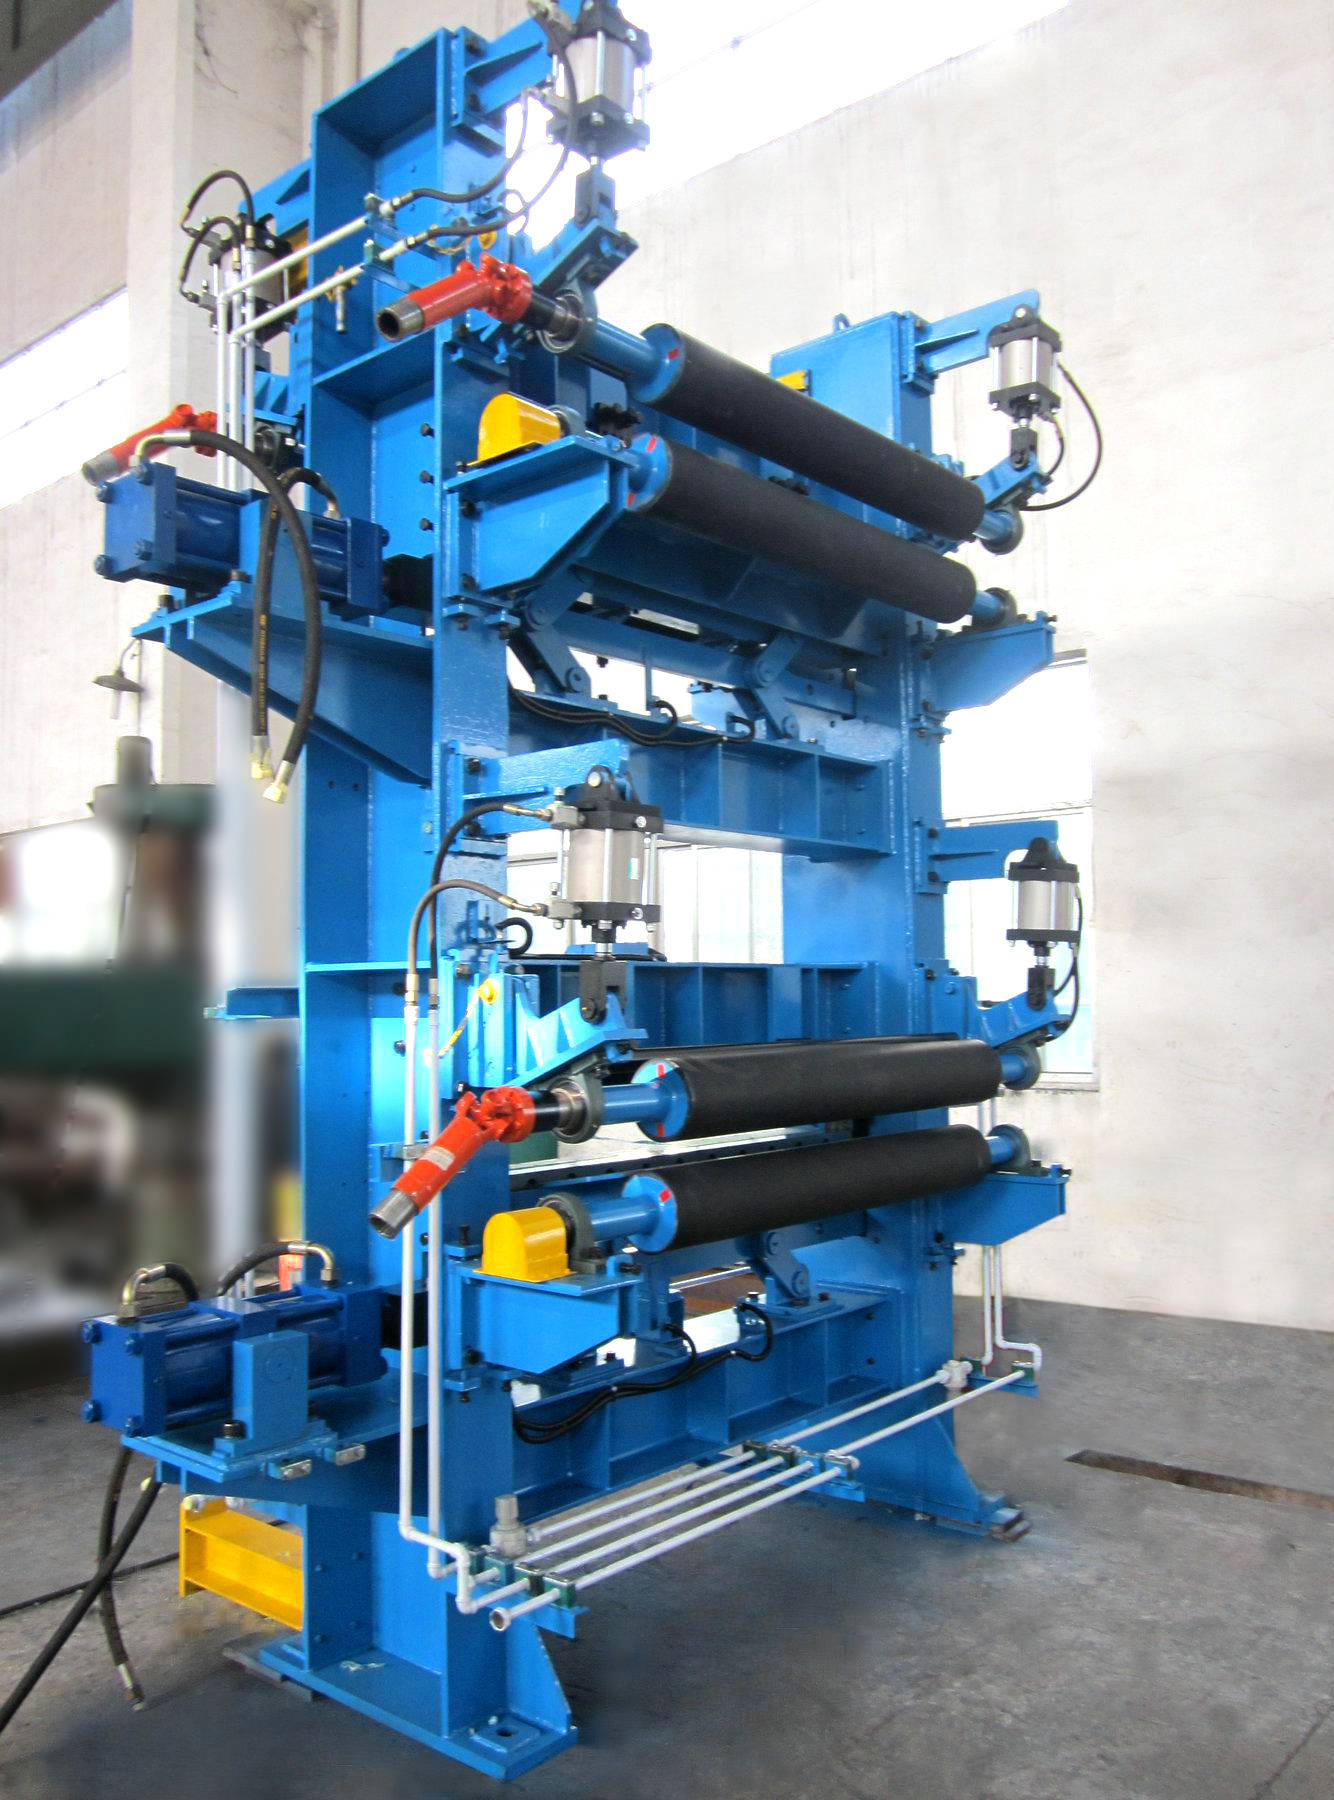 double-layer shear